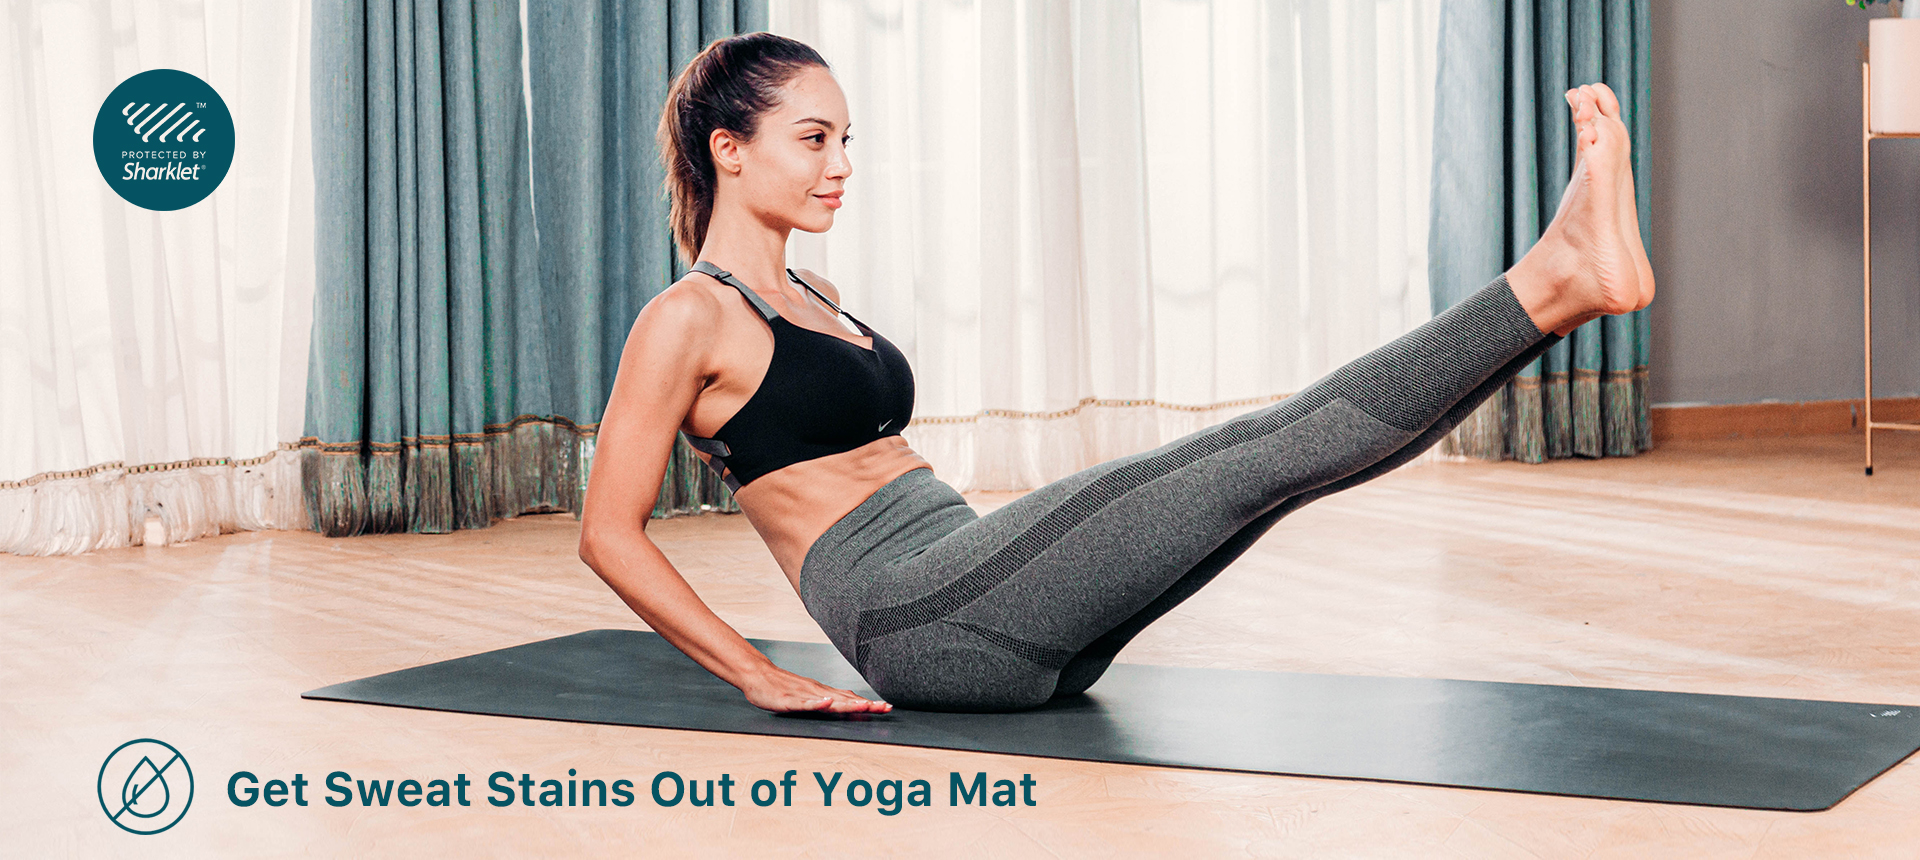 Get Sweat Stains Out of Yoga Mat